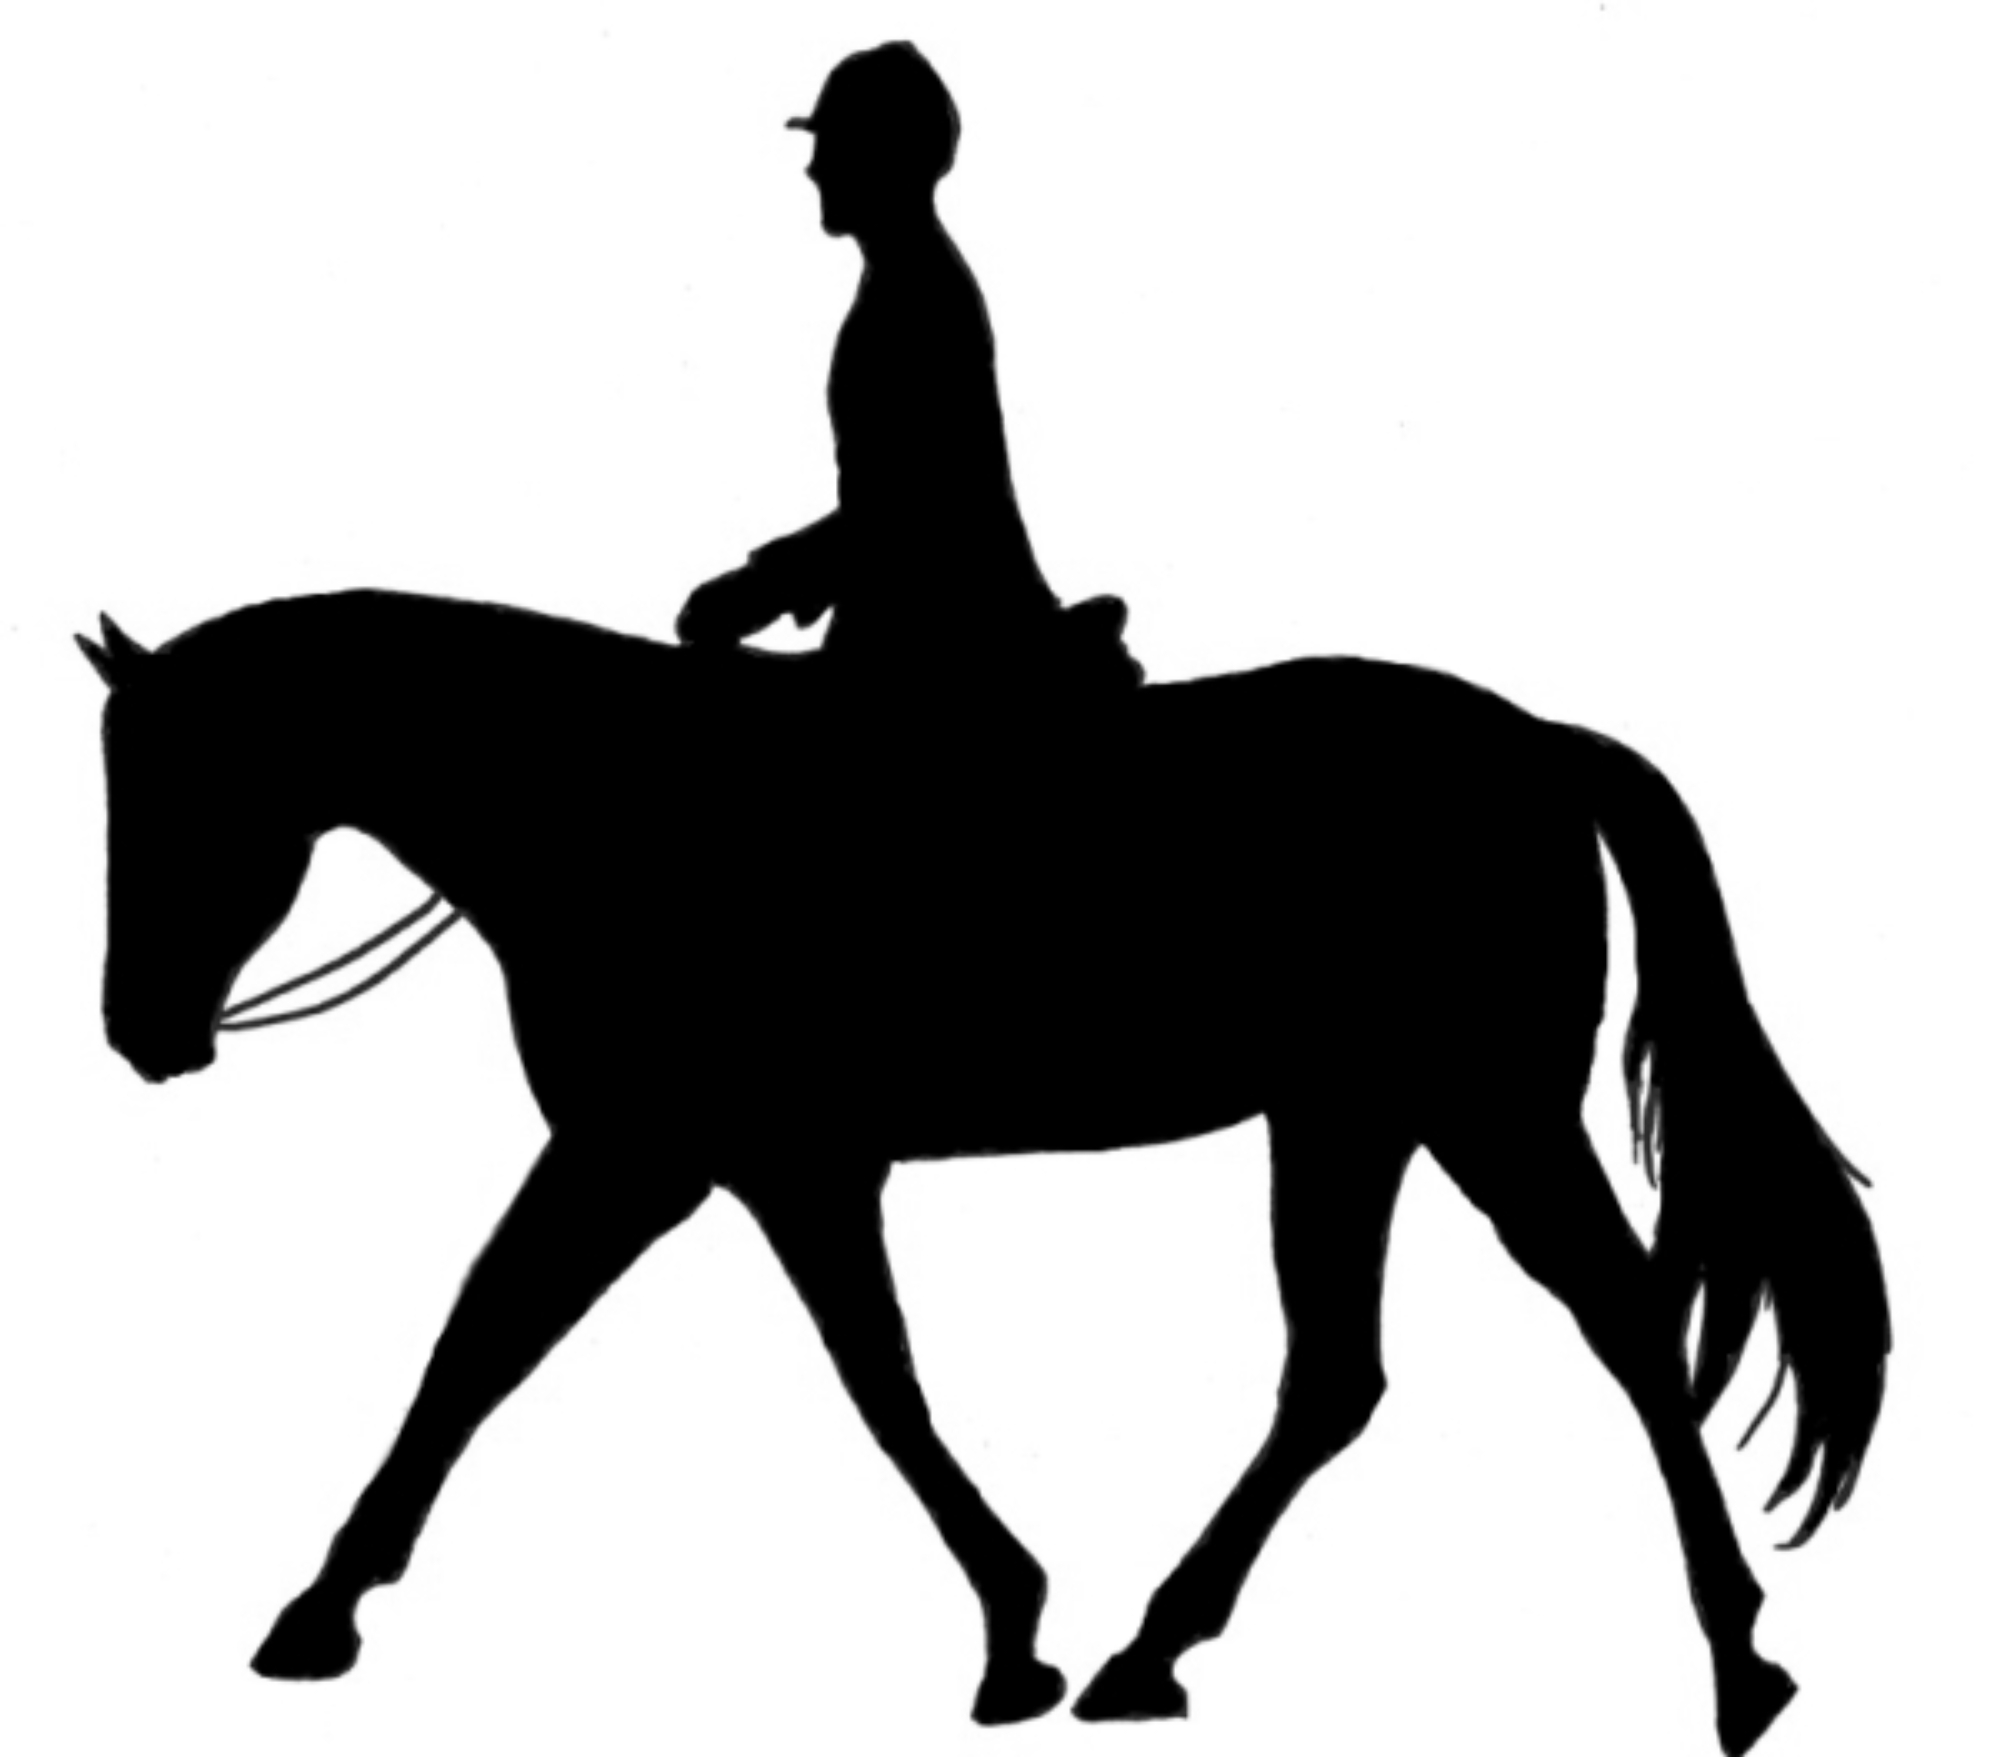 jumping horse silhouette at getdrawings com free for personal use rh getdrawings com horse jumping clipart black and white horse jumping fence clipart